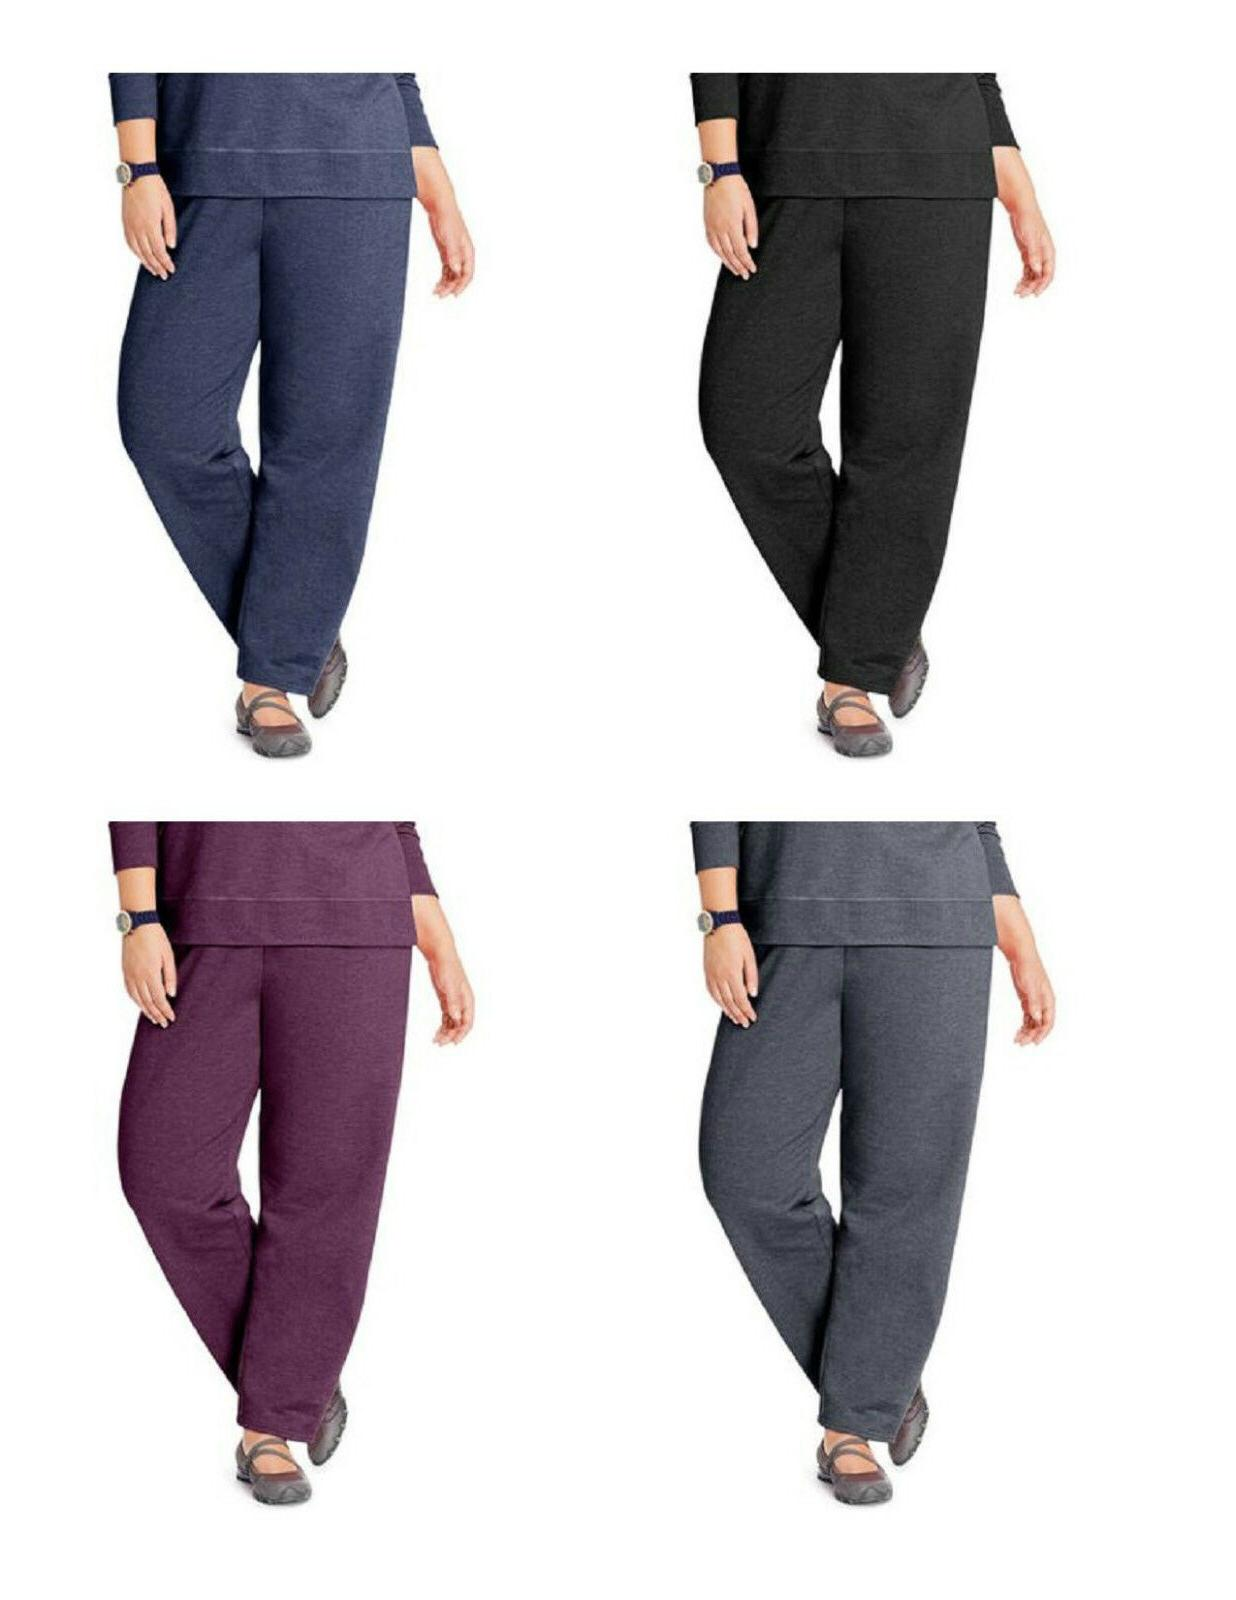 Just My Size Women's Plus Size~Petite PLus Fleece Sweatpants